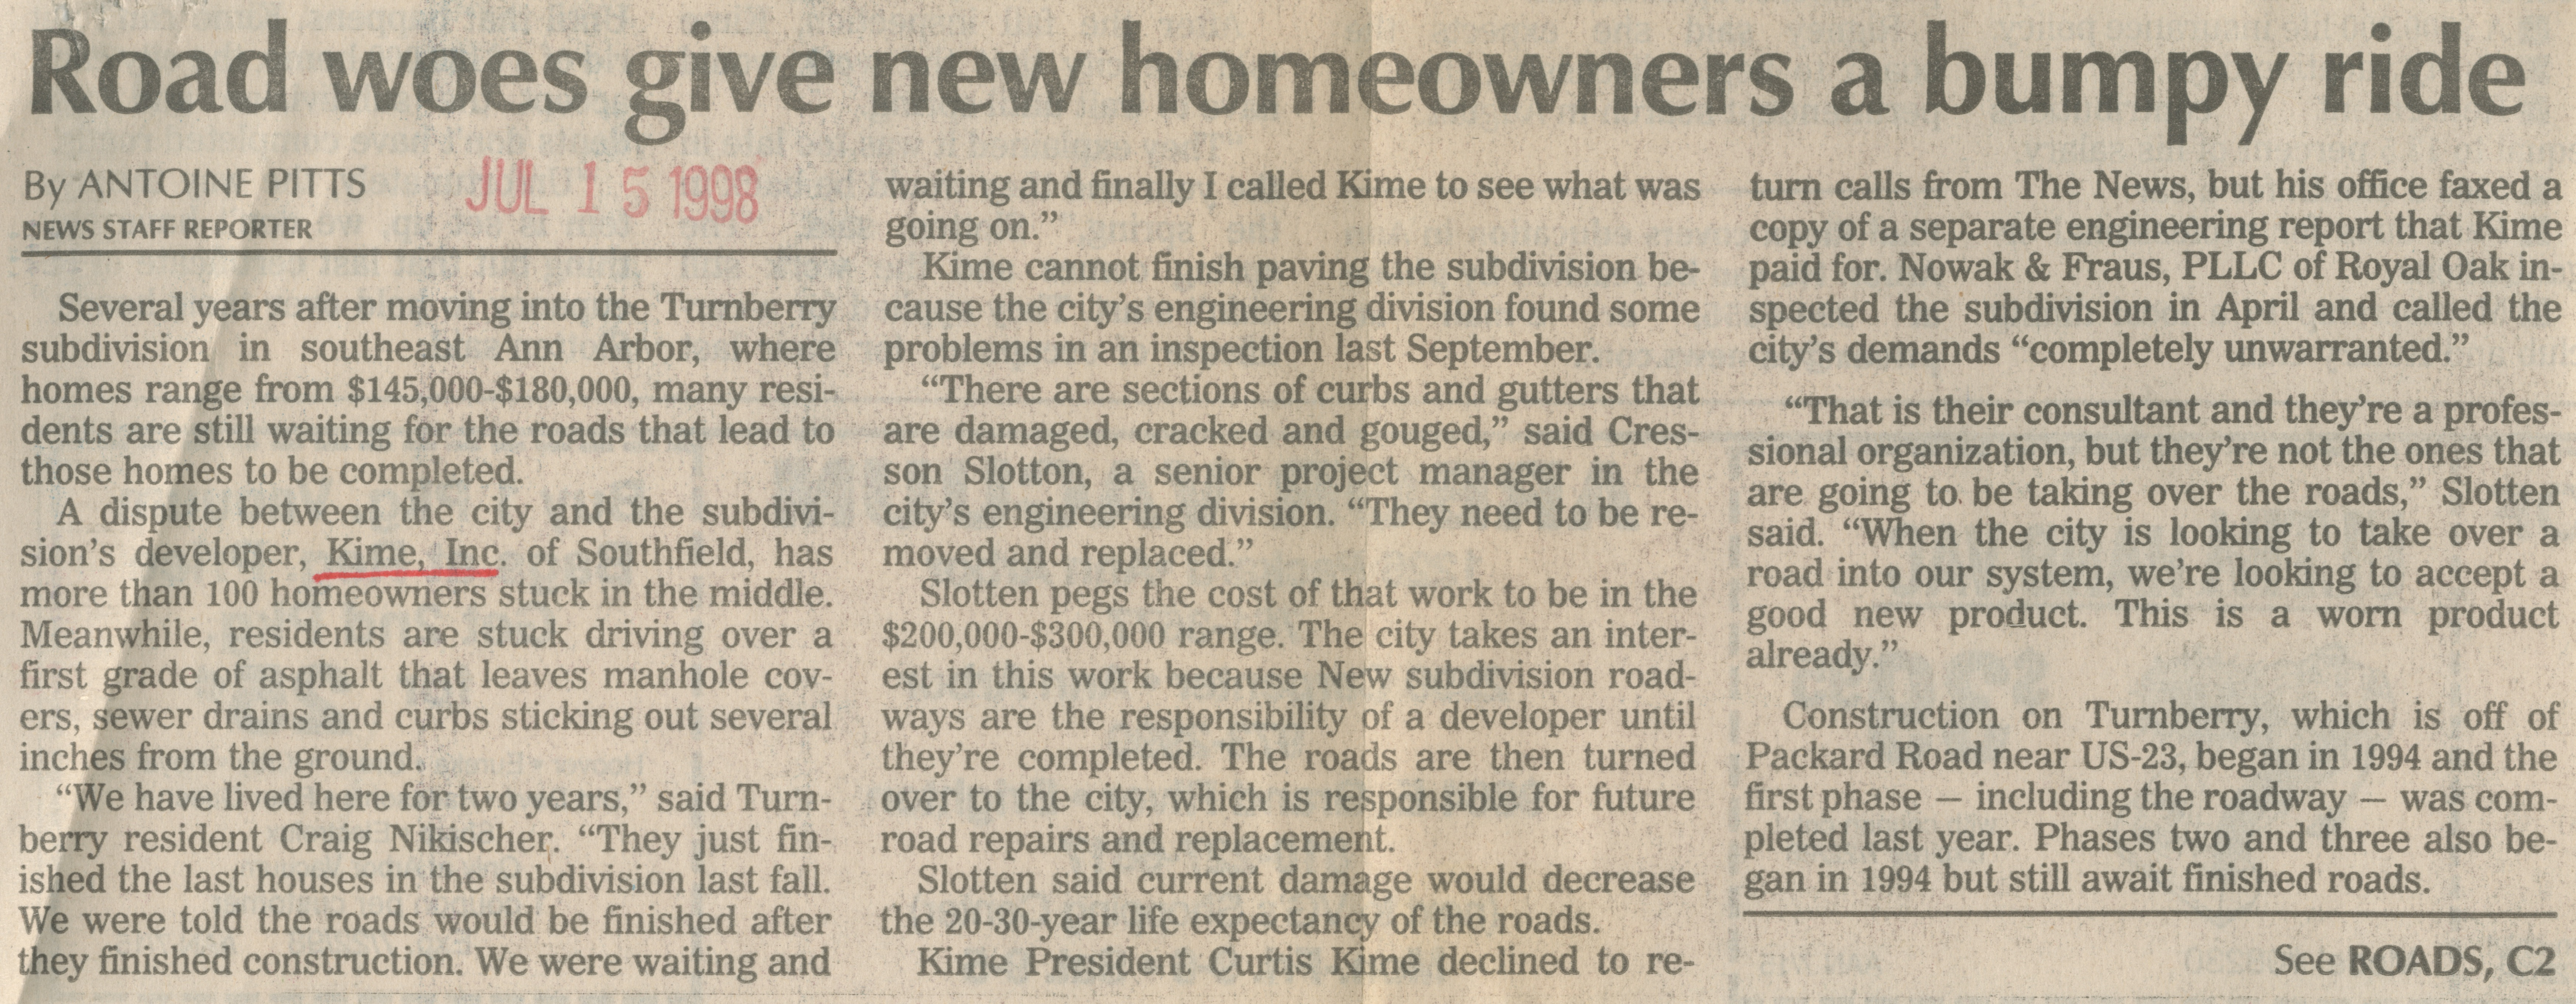 Road woes give new homeowners a bumpy ride image